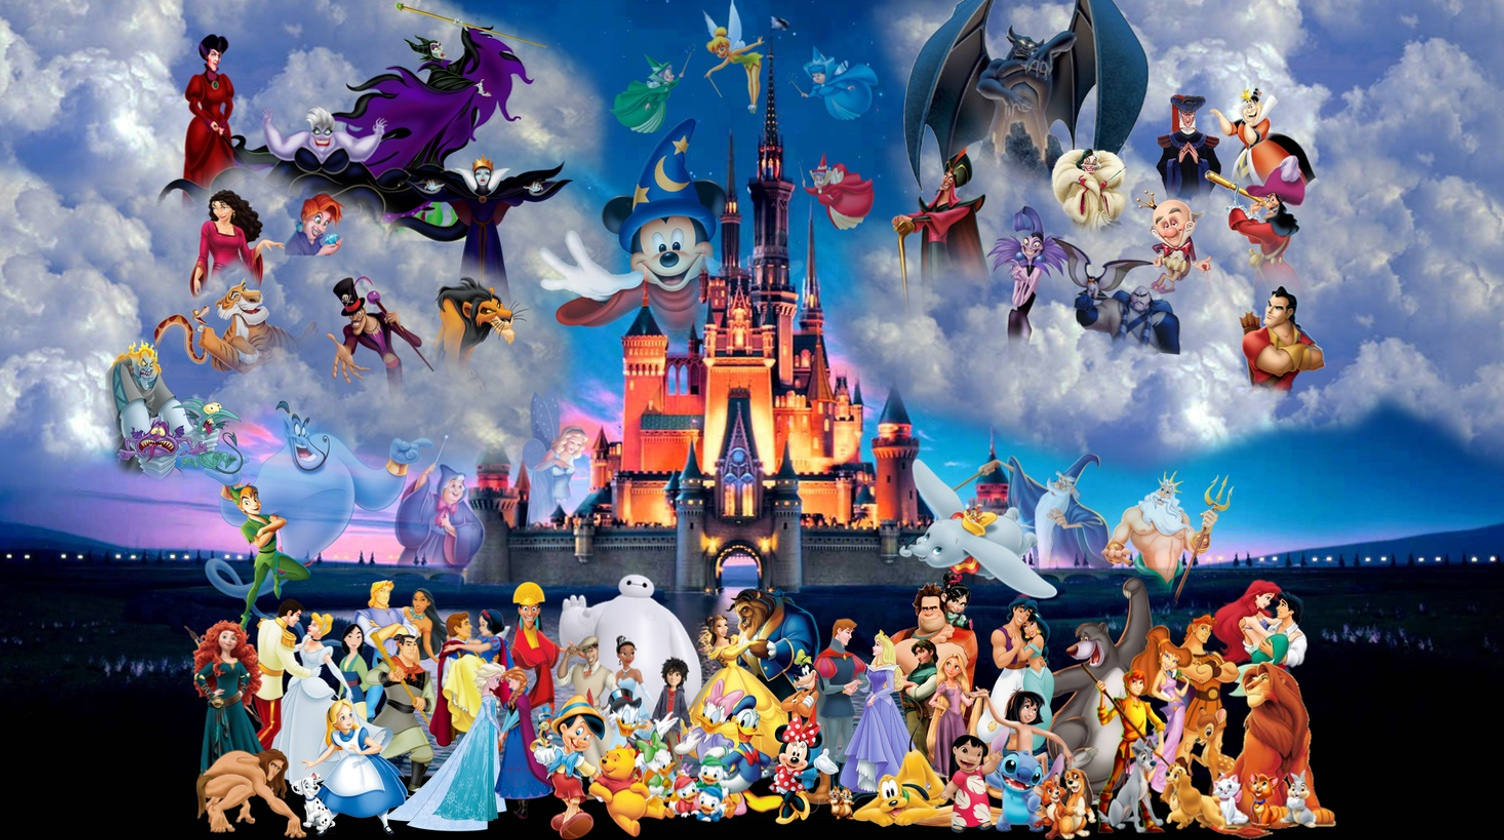 Disney Pictures Inspirational Pictures